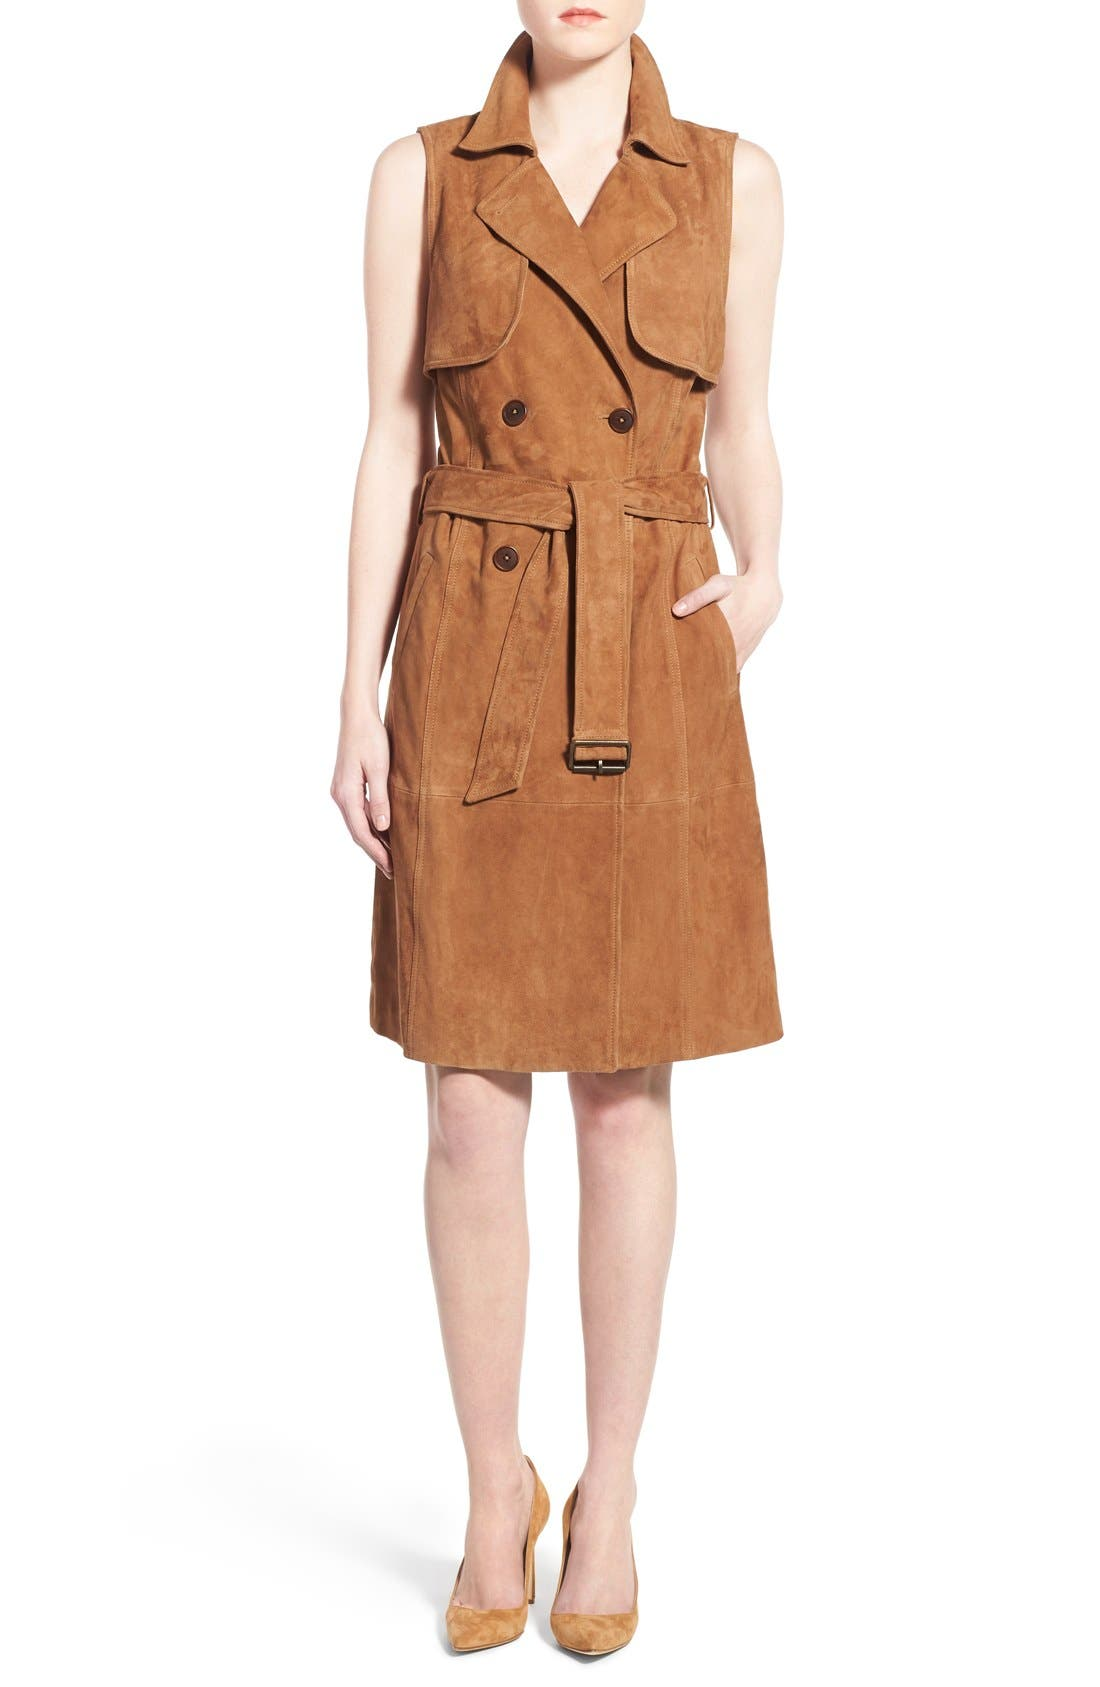 Main Image - Olivia Palermo + Chelsea28 Sleeveless Suede Trench Dress